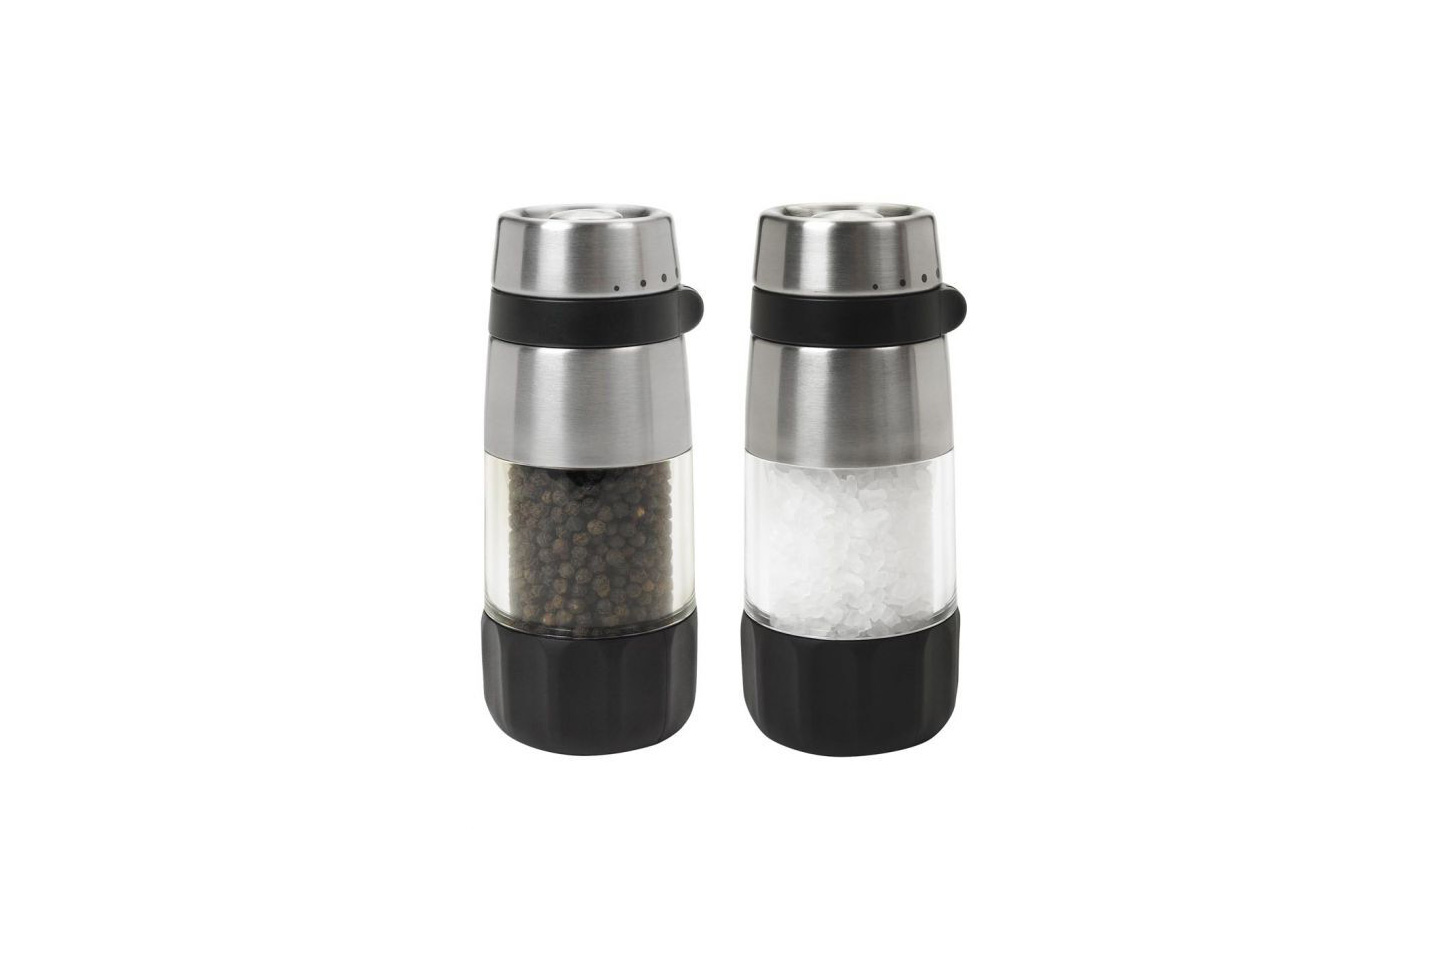 OXO salt and pepper grinders on a white background